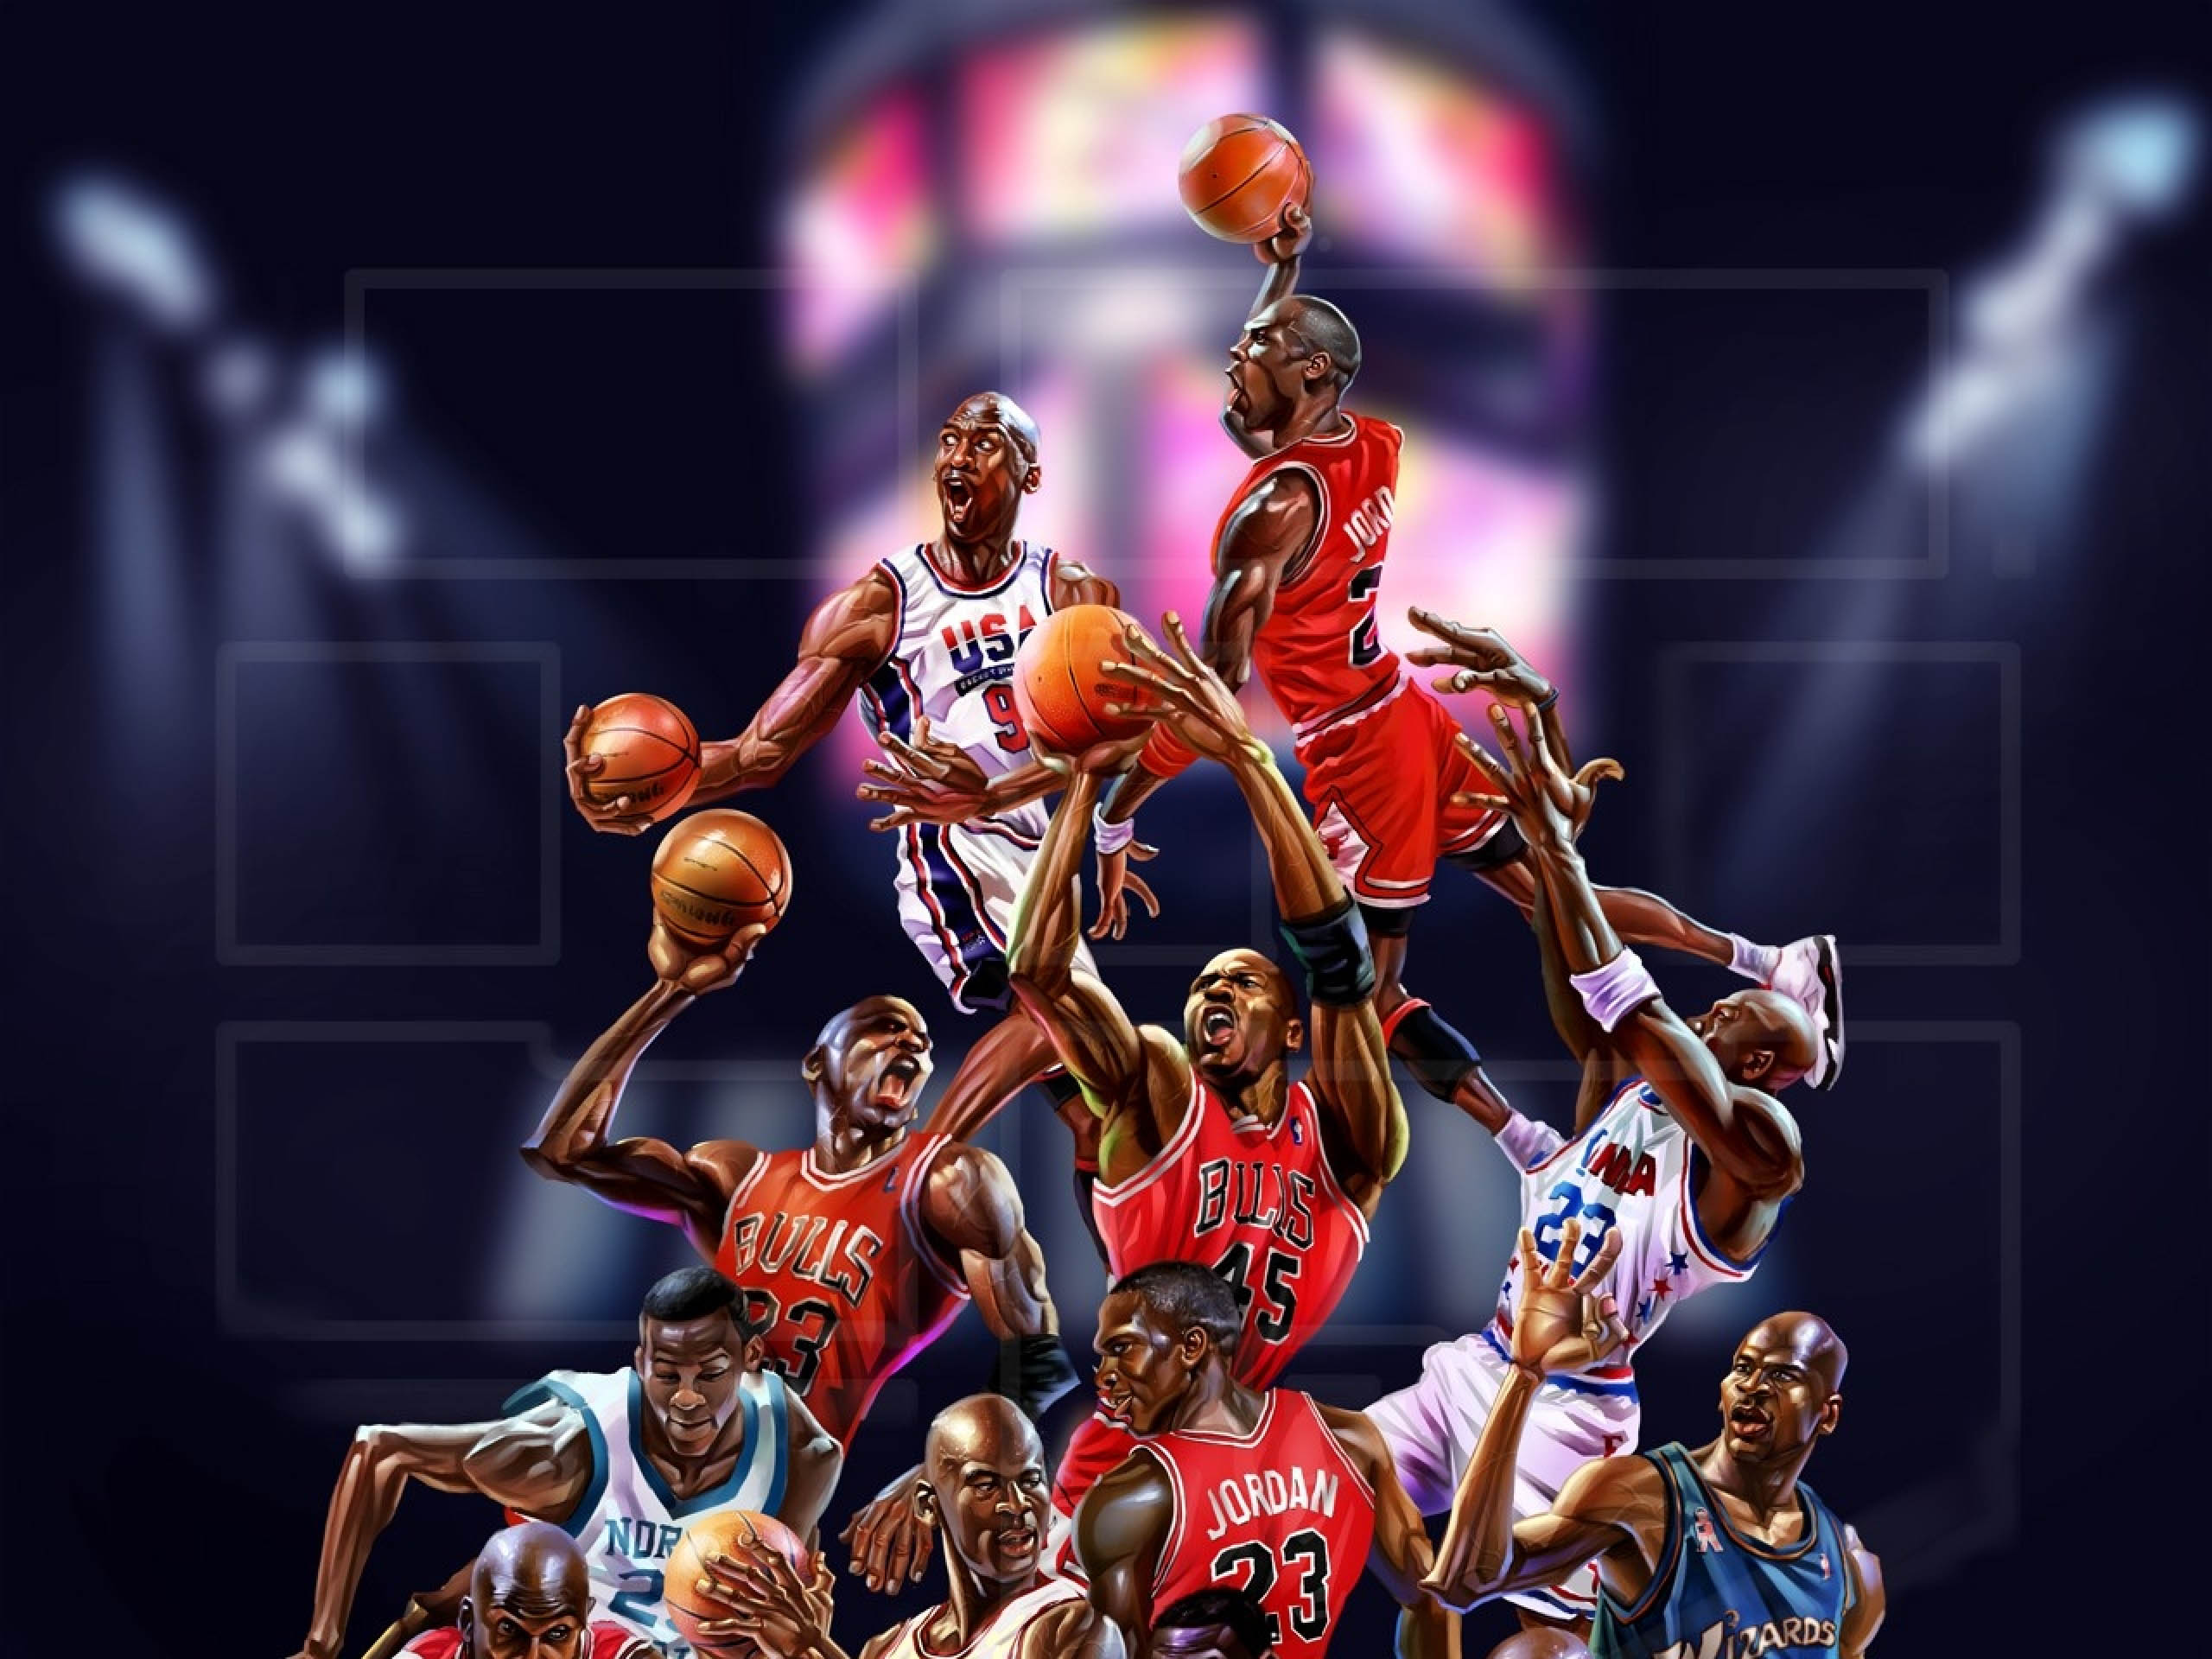 Michael Jordan 50th Wallpaper: Michael Jordan Art, HD Sports, 4k Wallpapers, Images